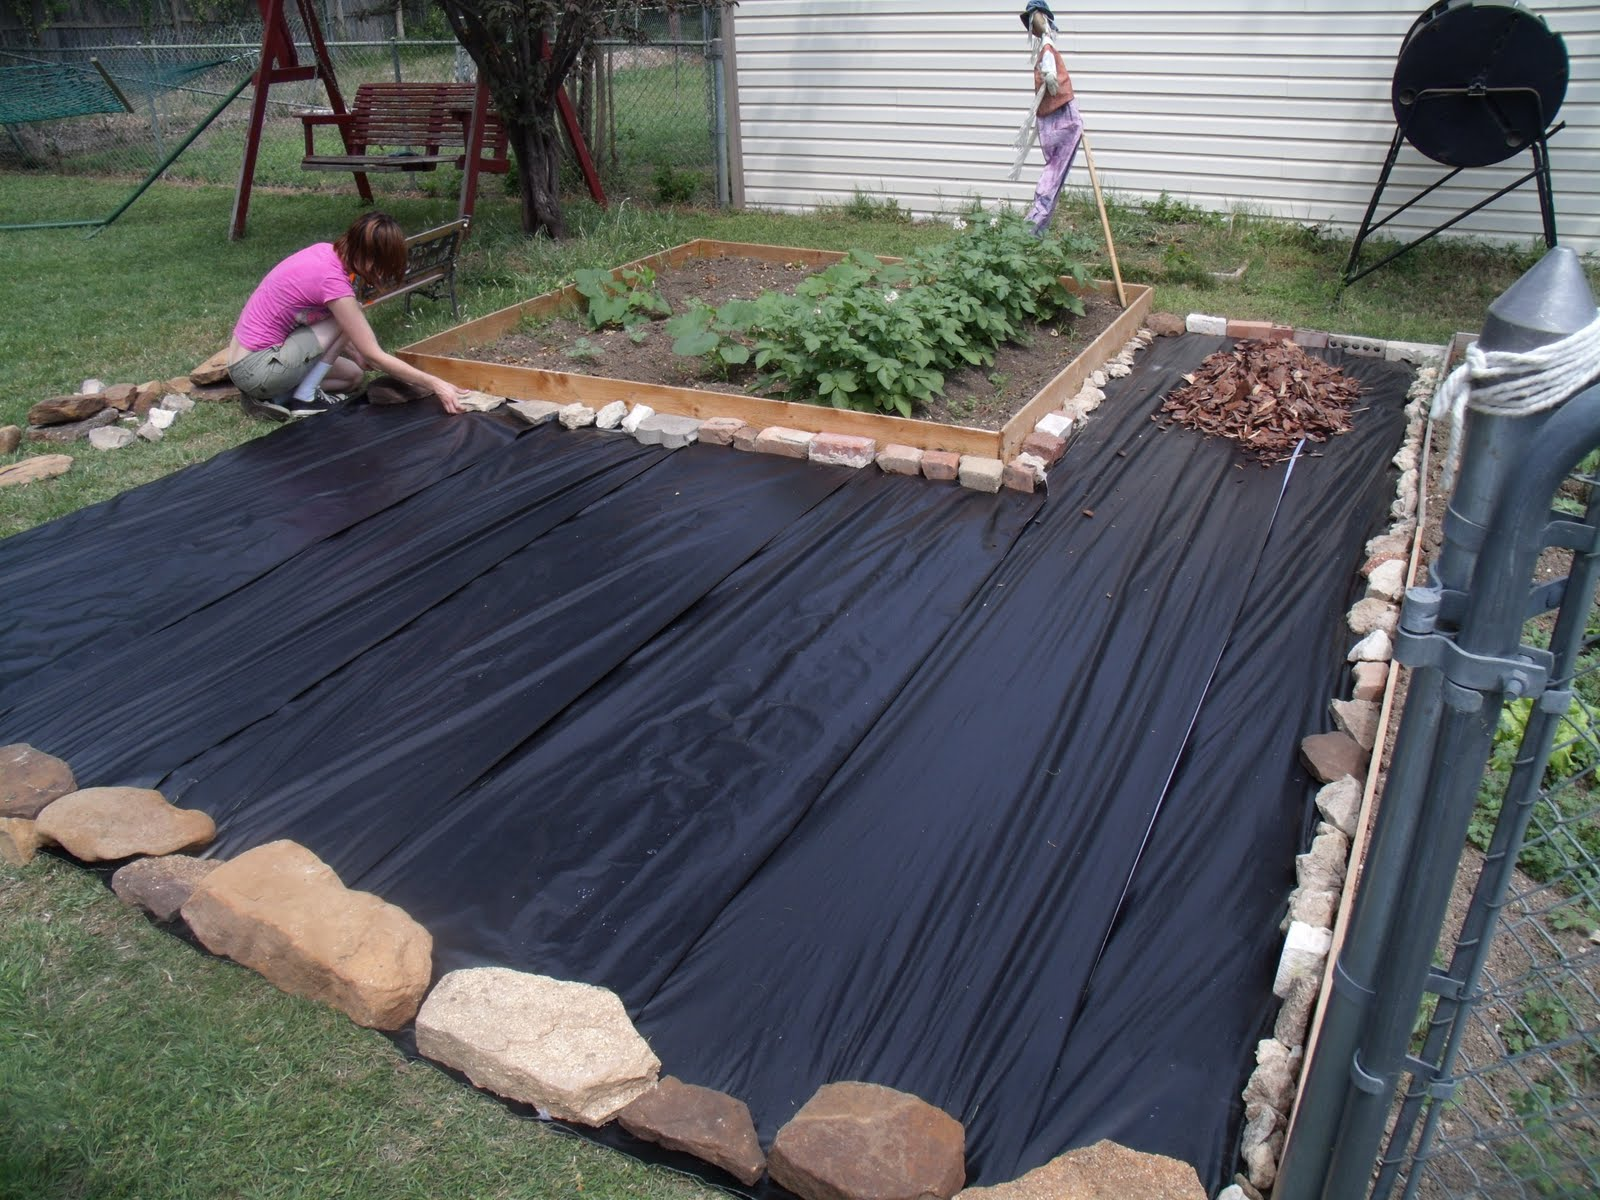 Backyard makeover on a budget - One Mama's Daily Drama on Patio Makeovers On A Budget id=40378